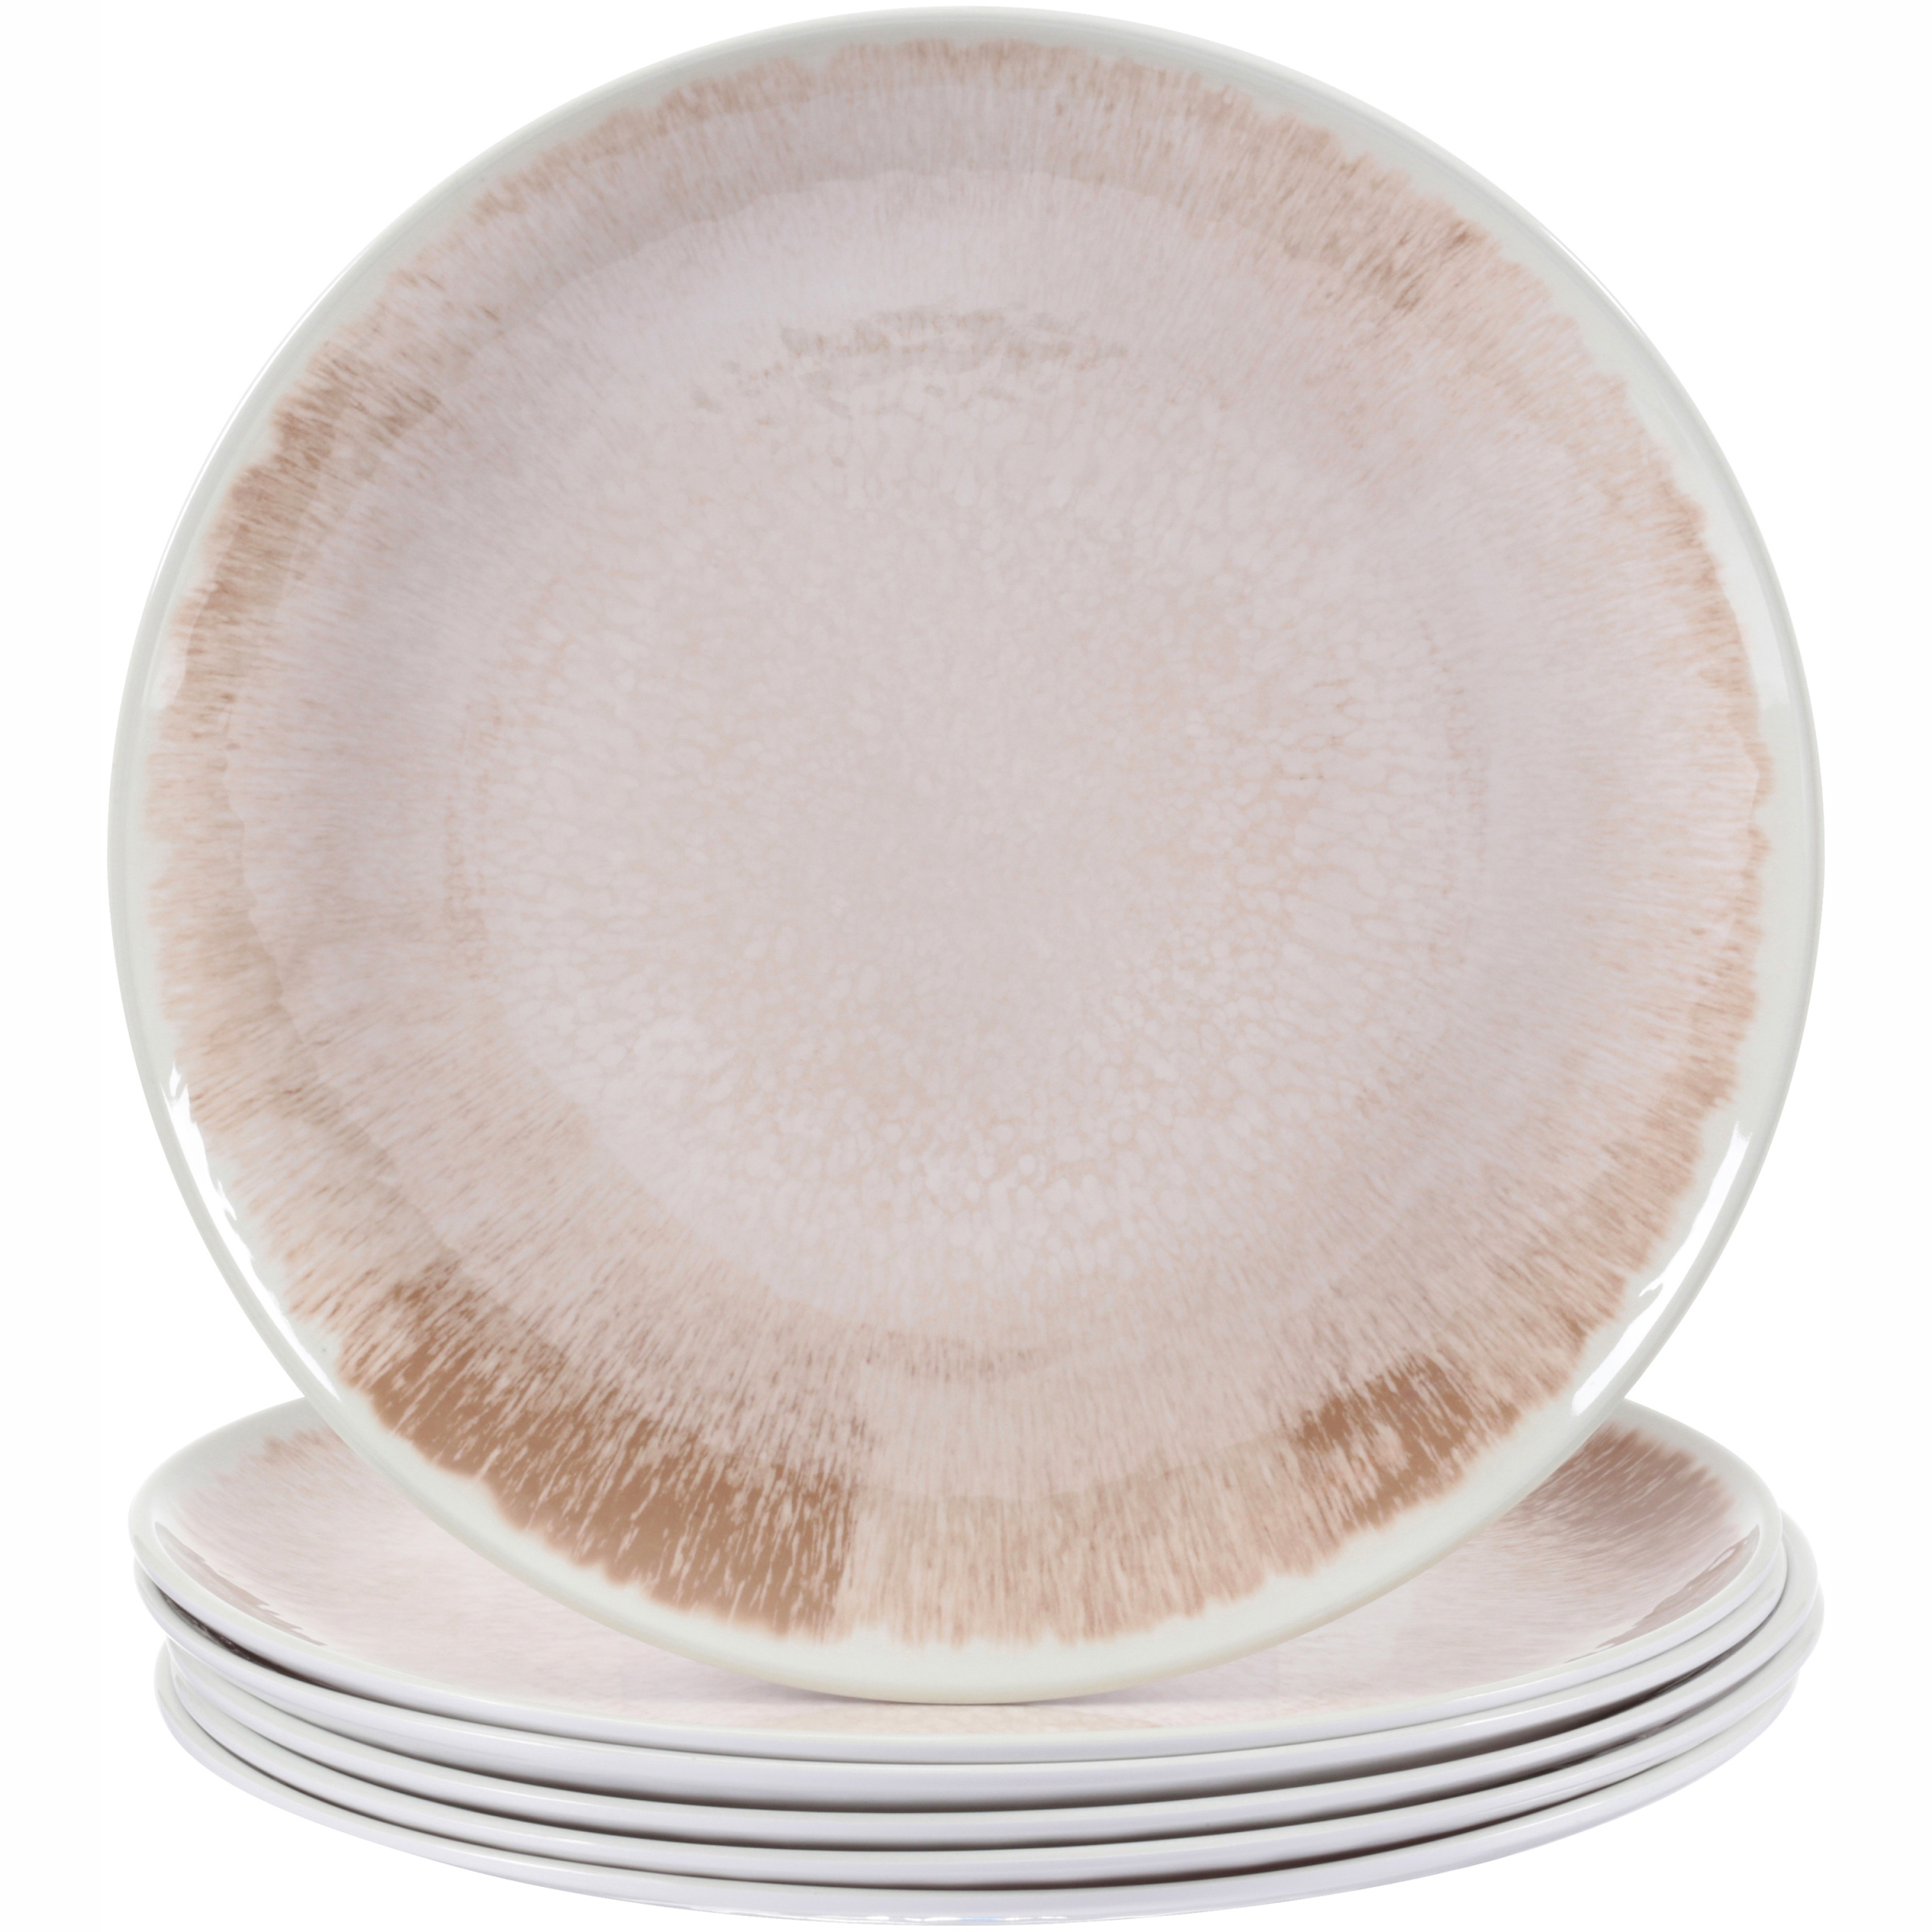 Better Homes and Gardens® Dinner Plate  sc 1 st  Walmart & Better Homes and Gardens Clear Dinner Plate with Hammered Texture ...